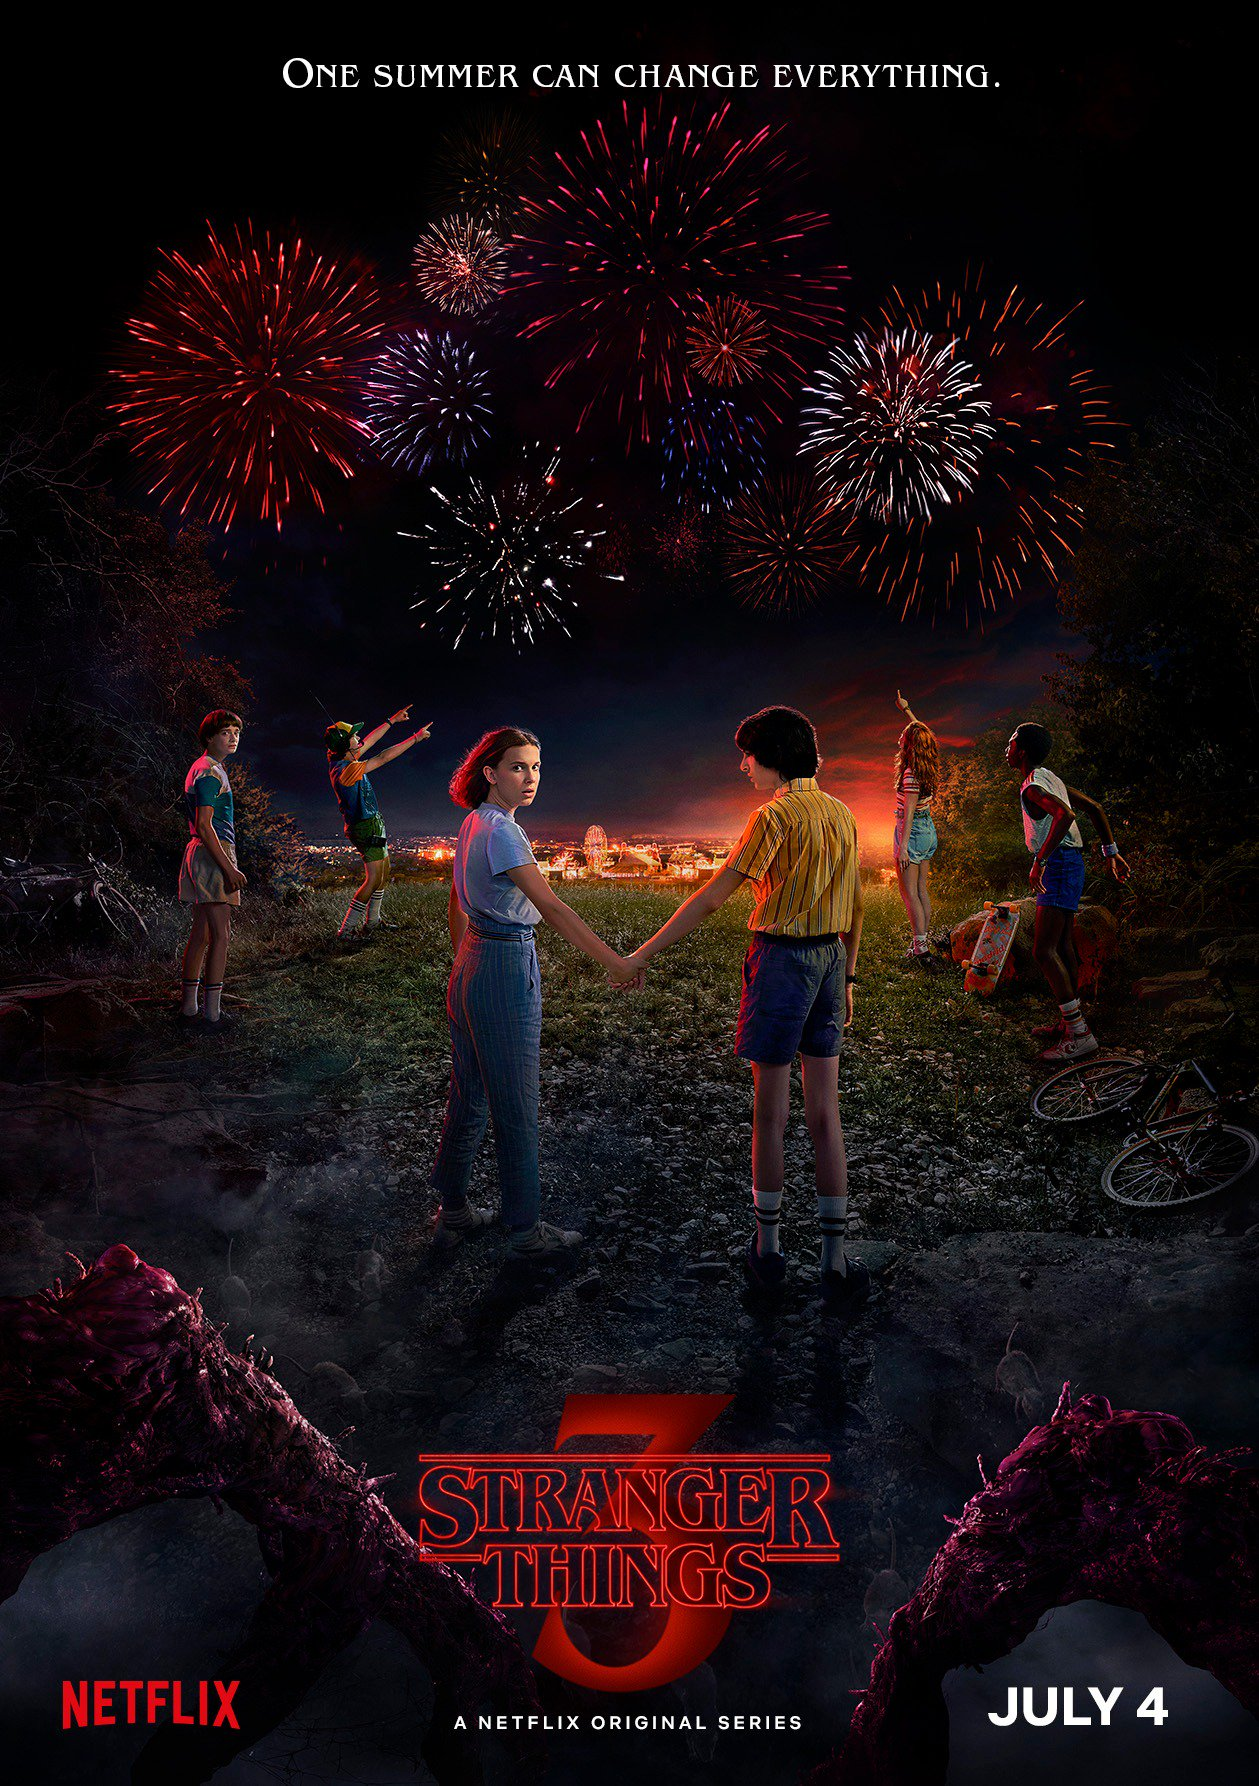 Stranger Things 3 Poster - One summer can change everything.